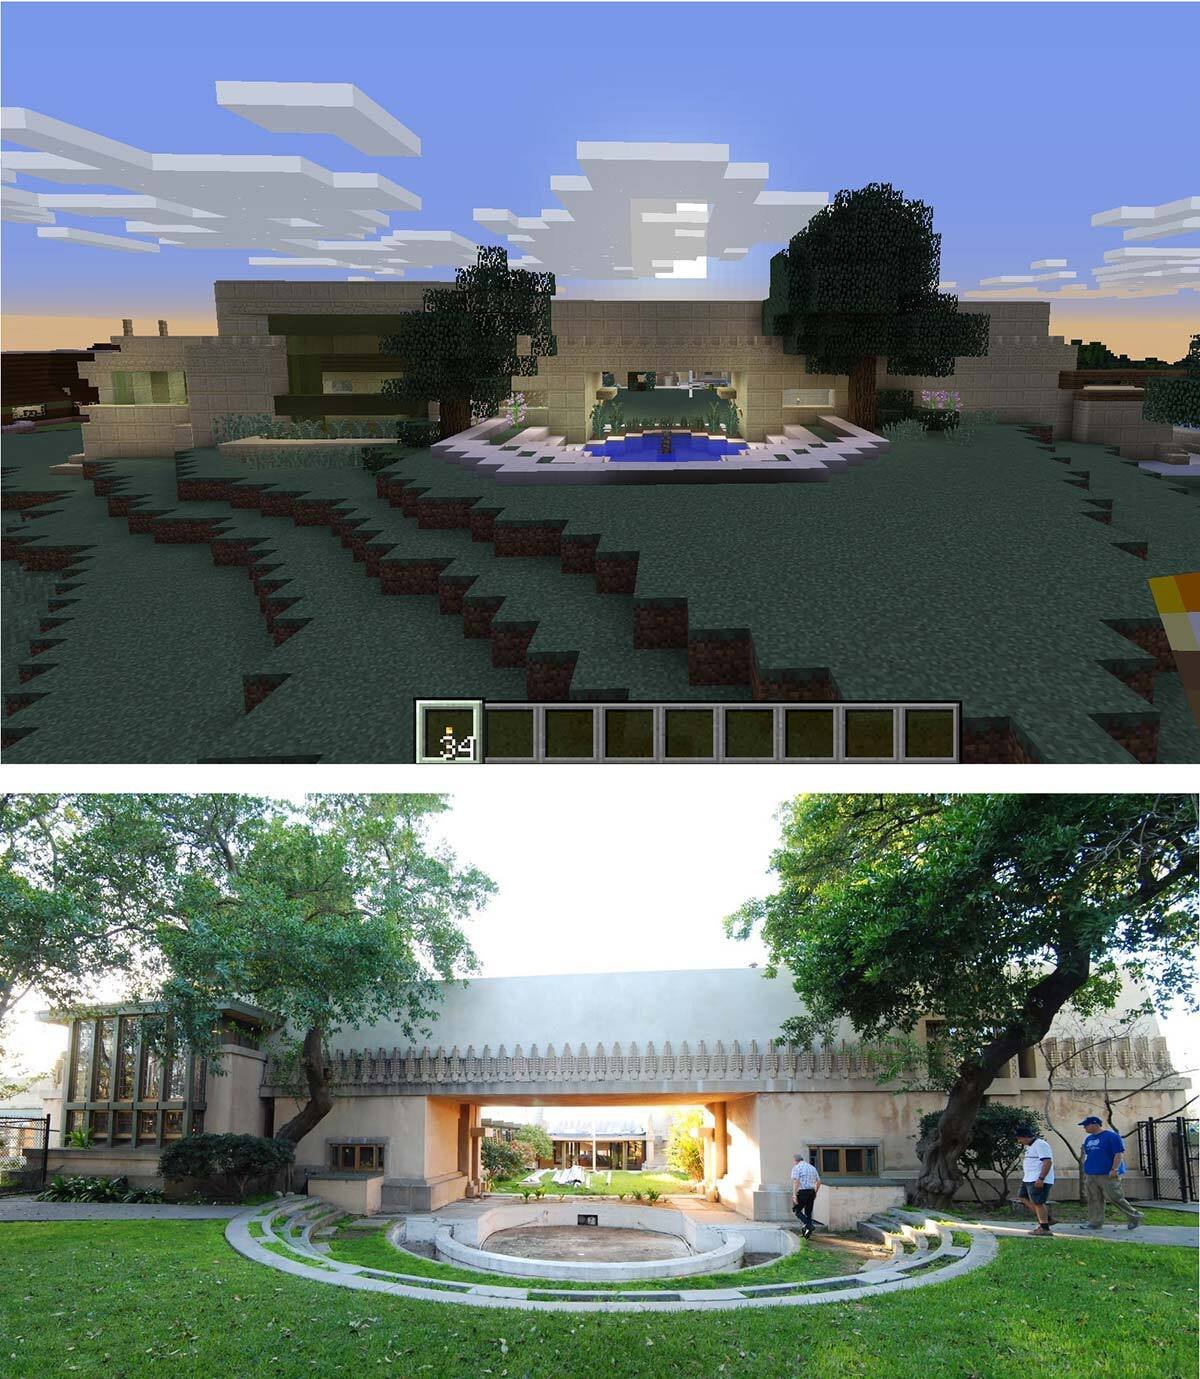 A side-by-side of the original and the Wrightcraft recreation of Frank Lloyd Wright's Hollyhock House's back pool | Kate Hedin FLW AB s9